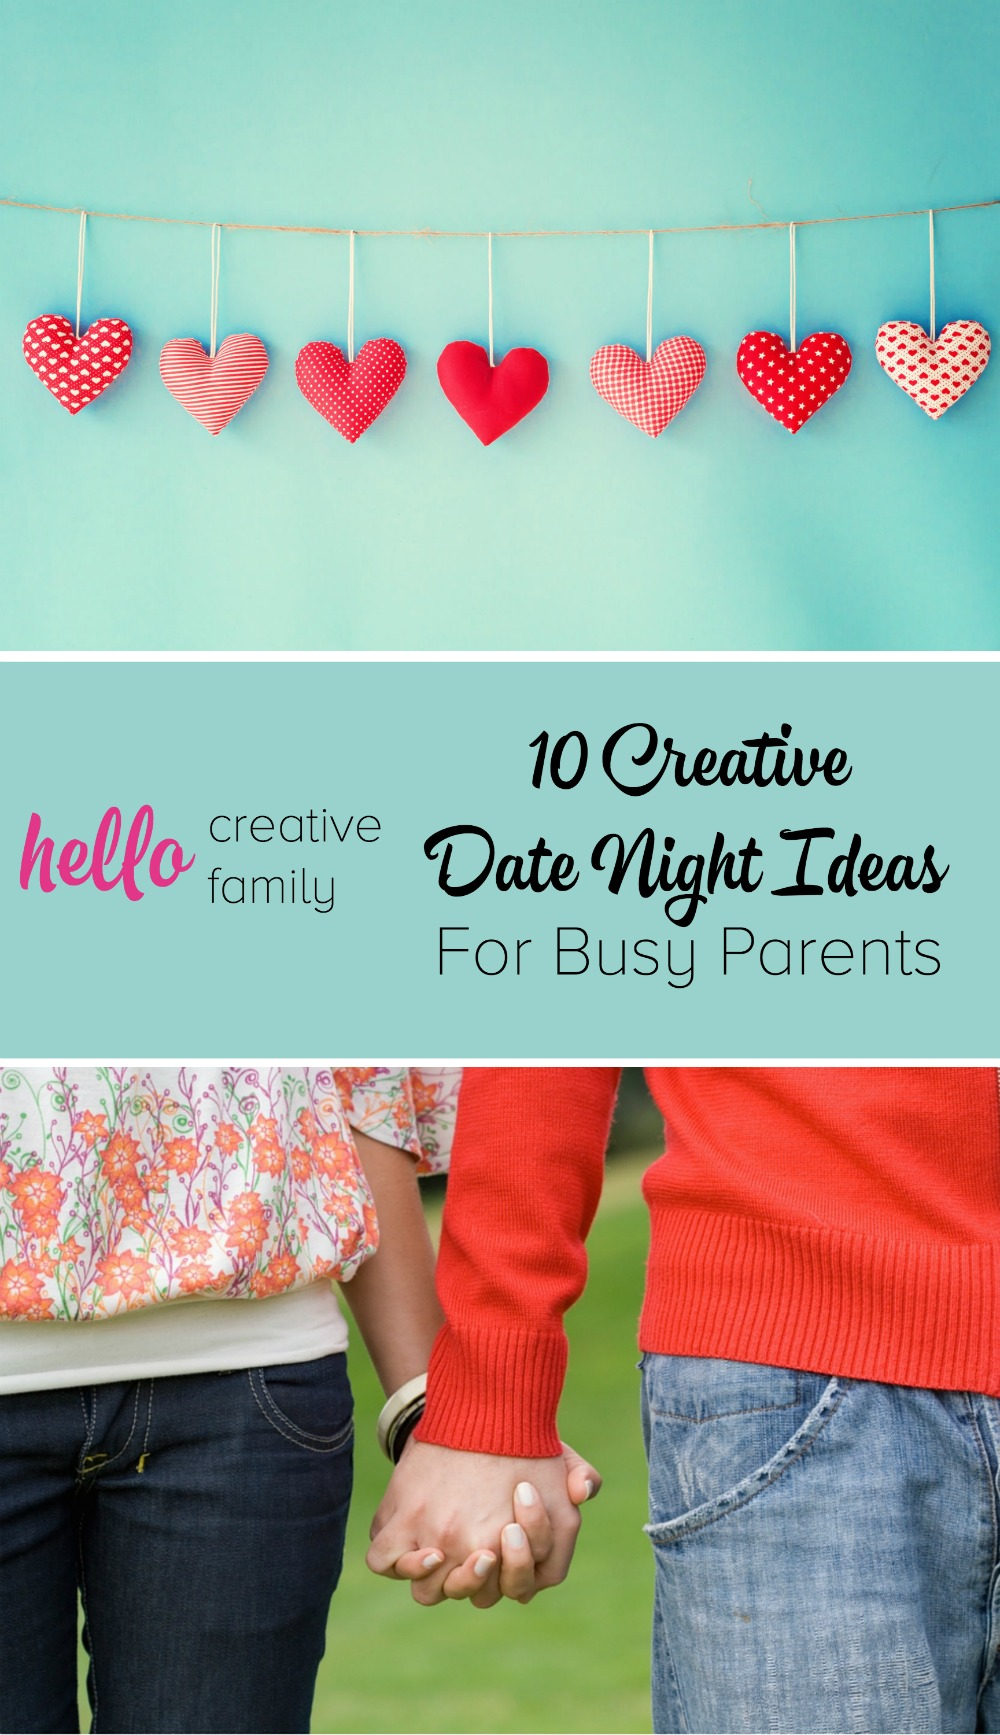 a308dfe2192 I need to take some of these ideas and get creative with dates with my  husband